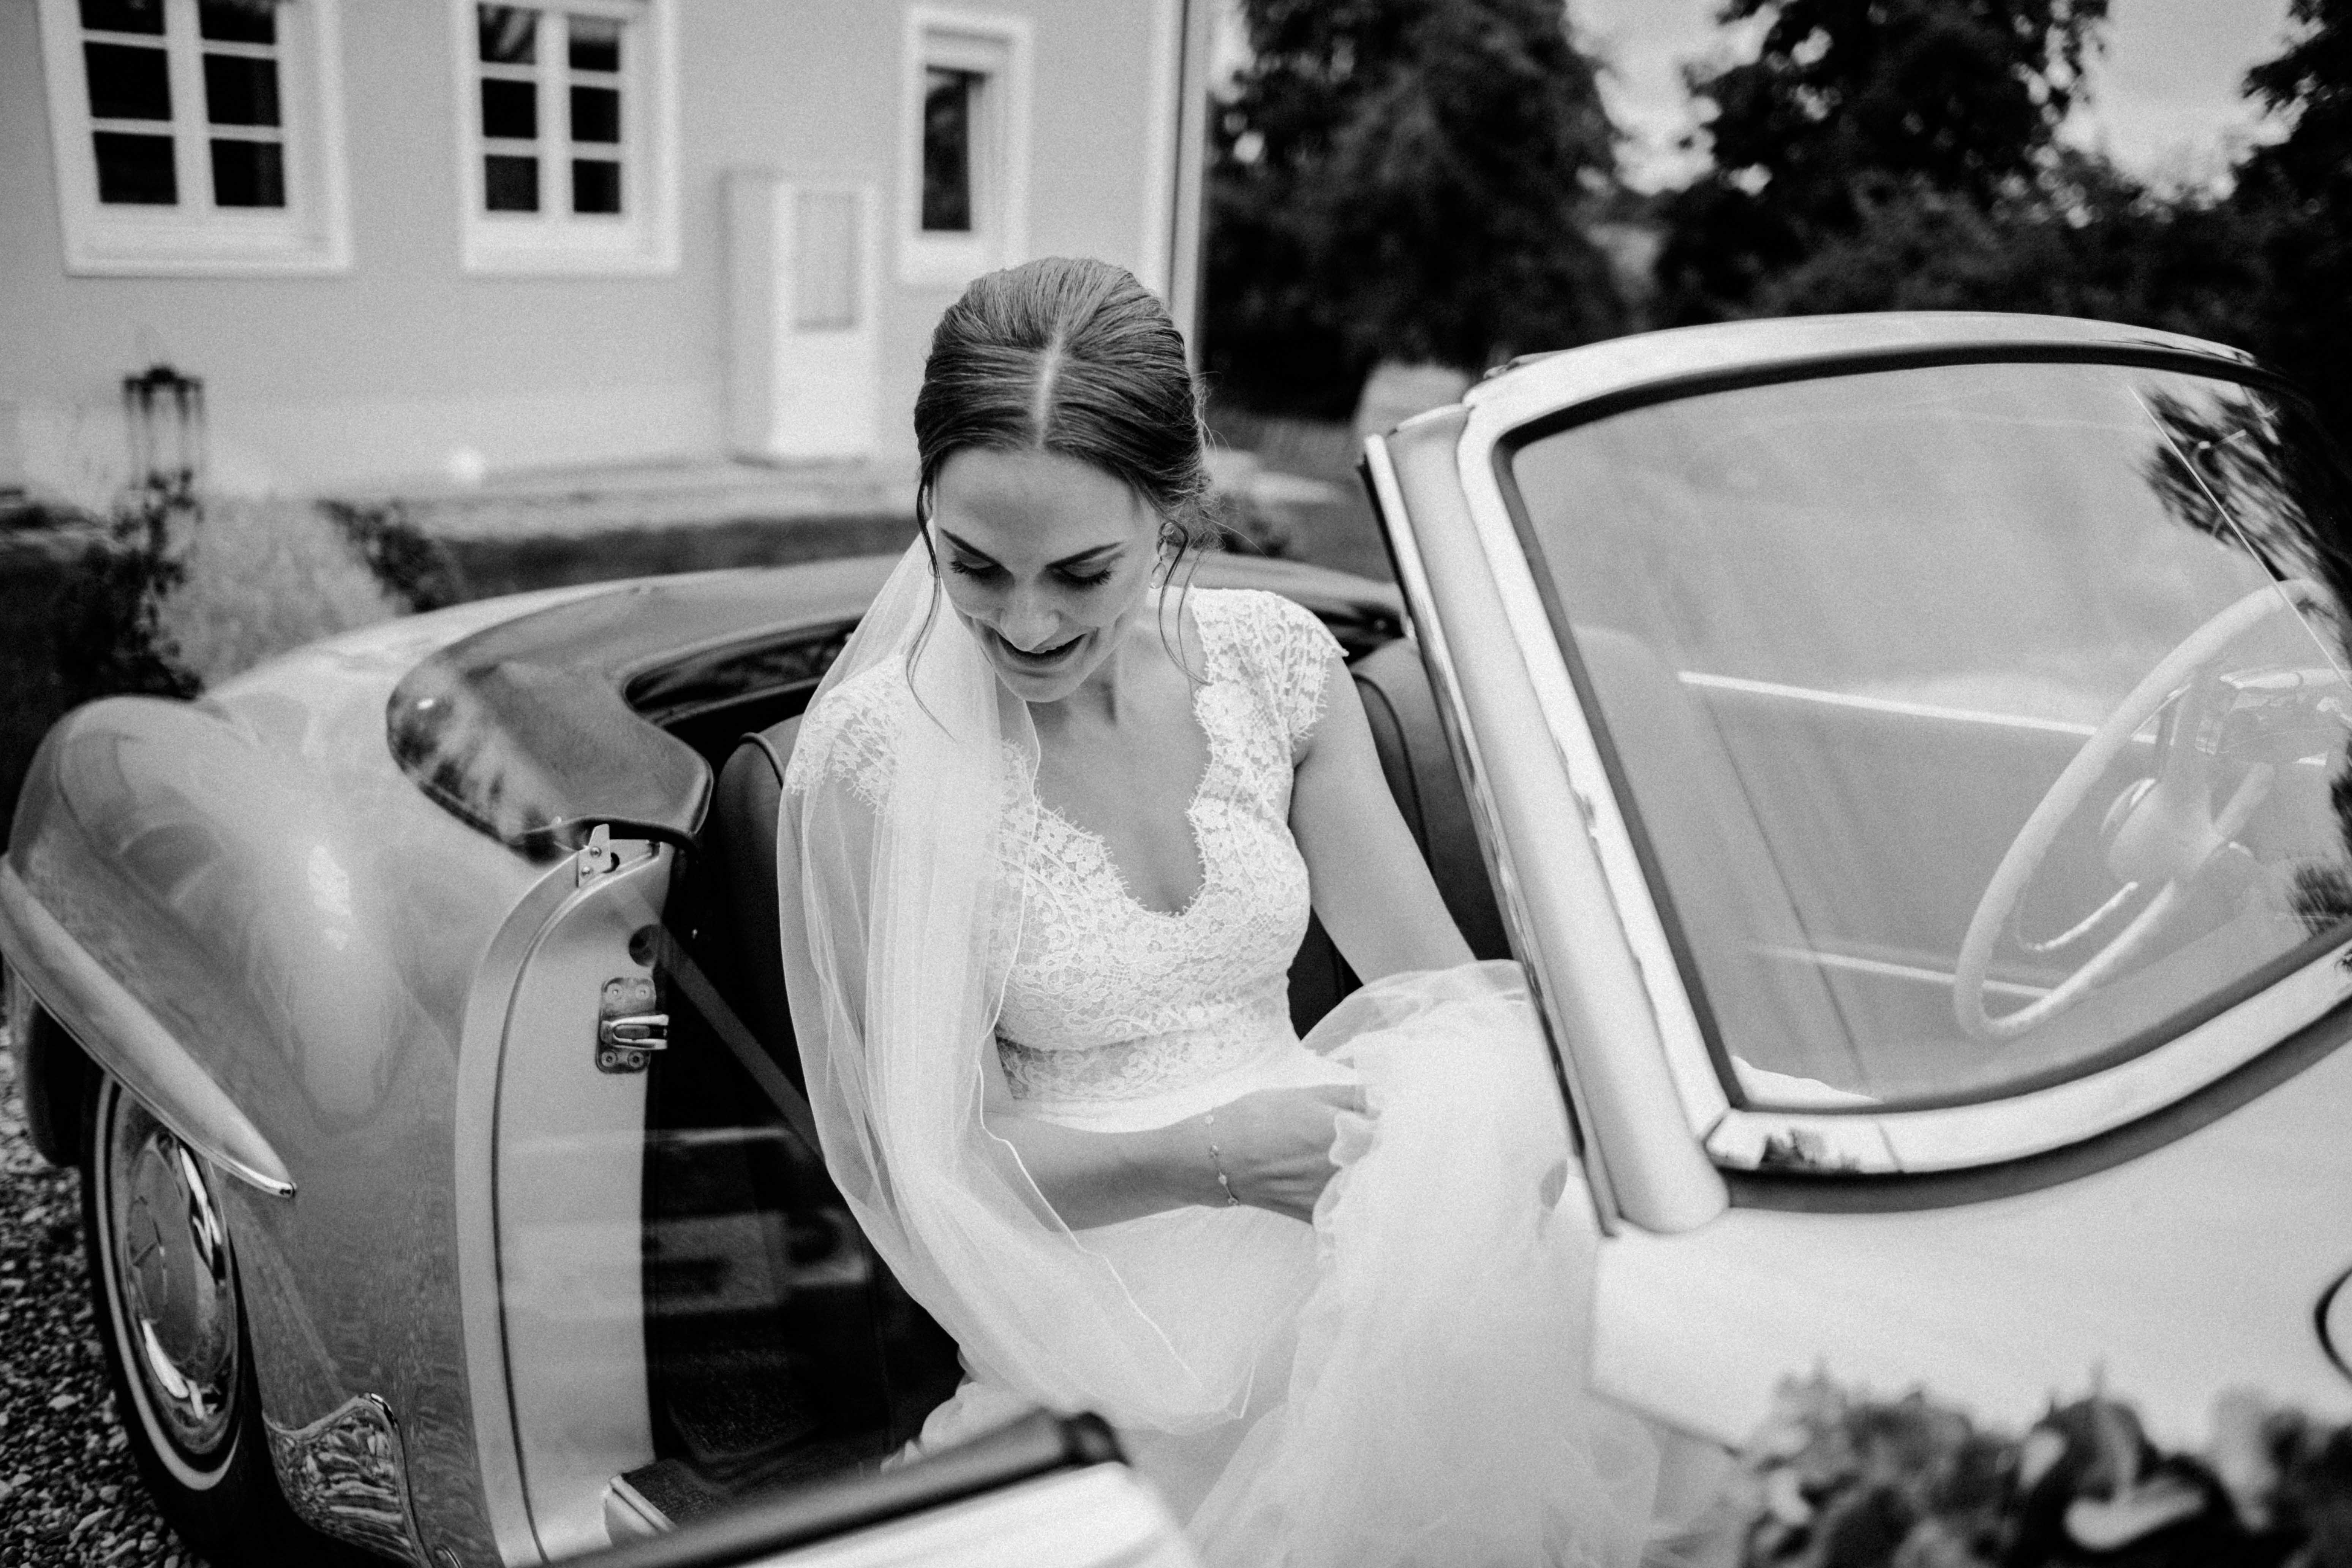 oldtimer auto sonja poehlmann photography couples muenchen bayern